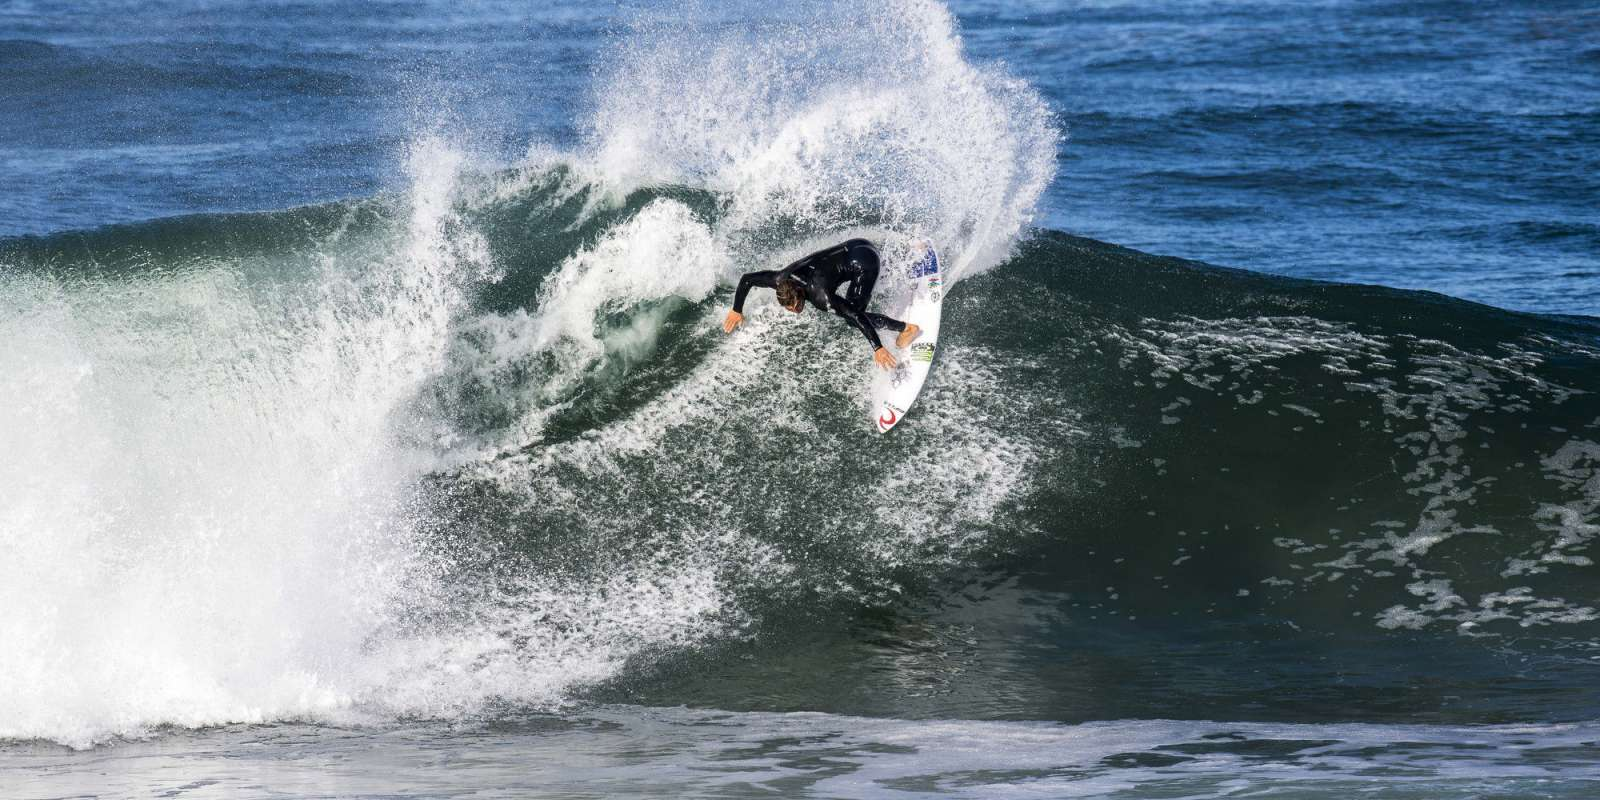 Conner Coffin surf images for This Way In Pro in France